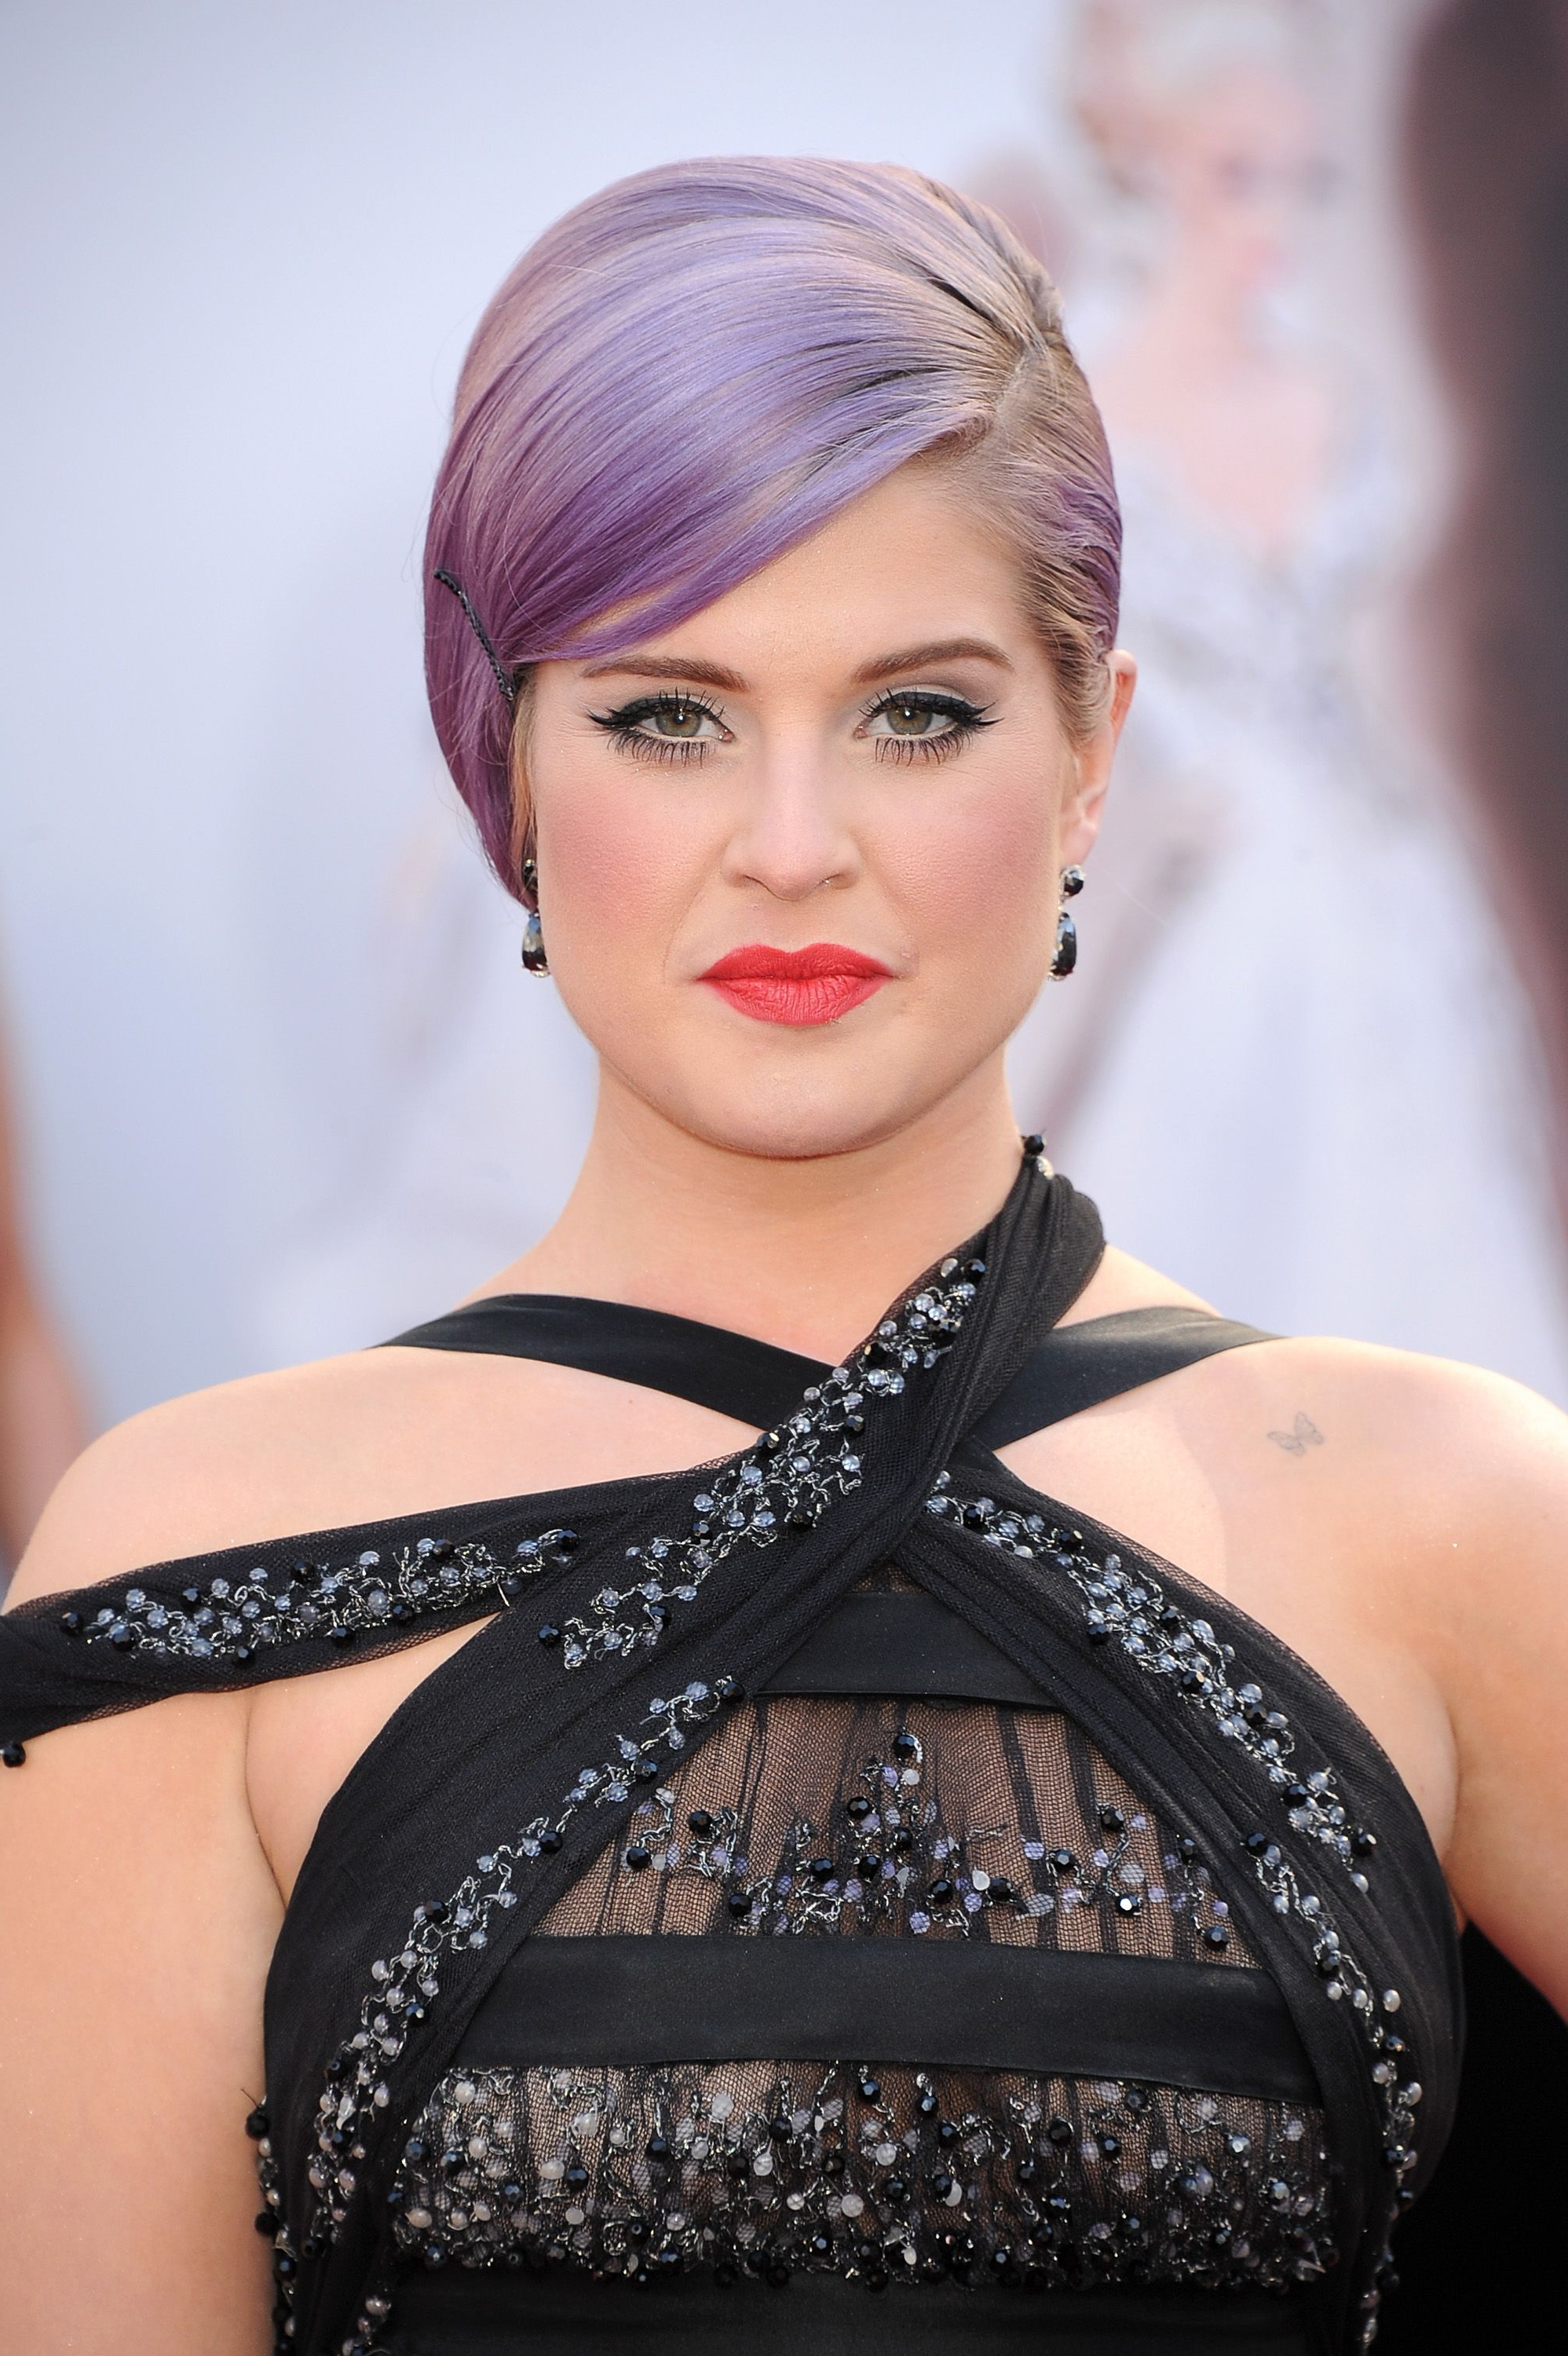 37 Of The Best Oscars Hairstyles Of All Time With Kelly Osbourne Short Haircuts (View 25 of 25)